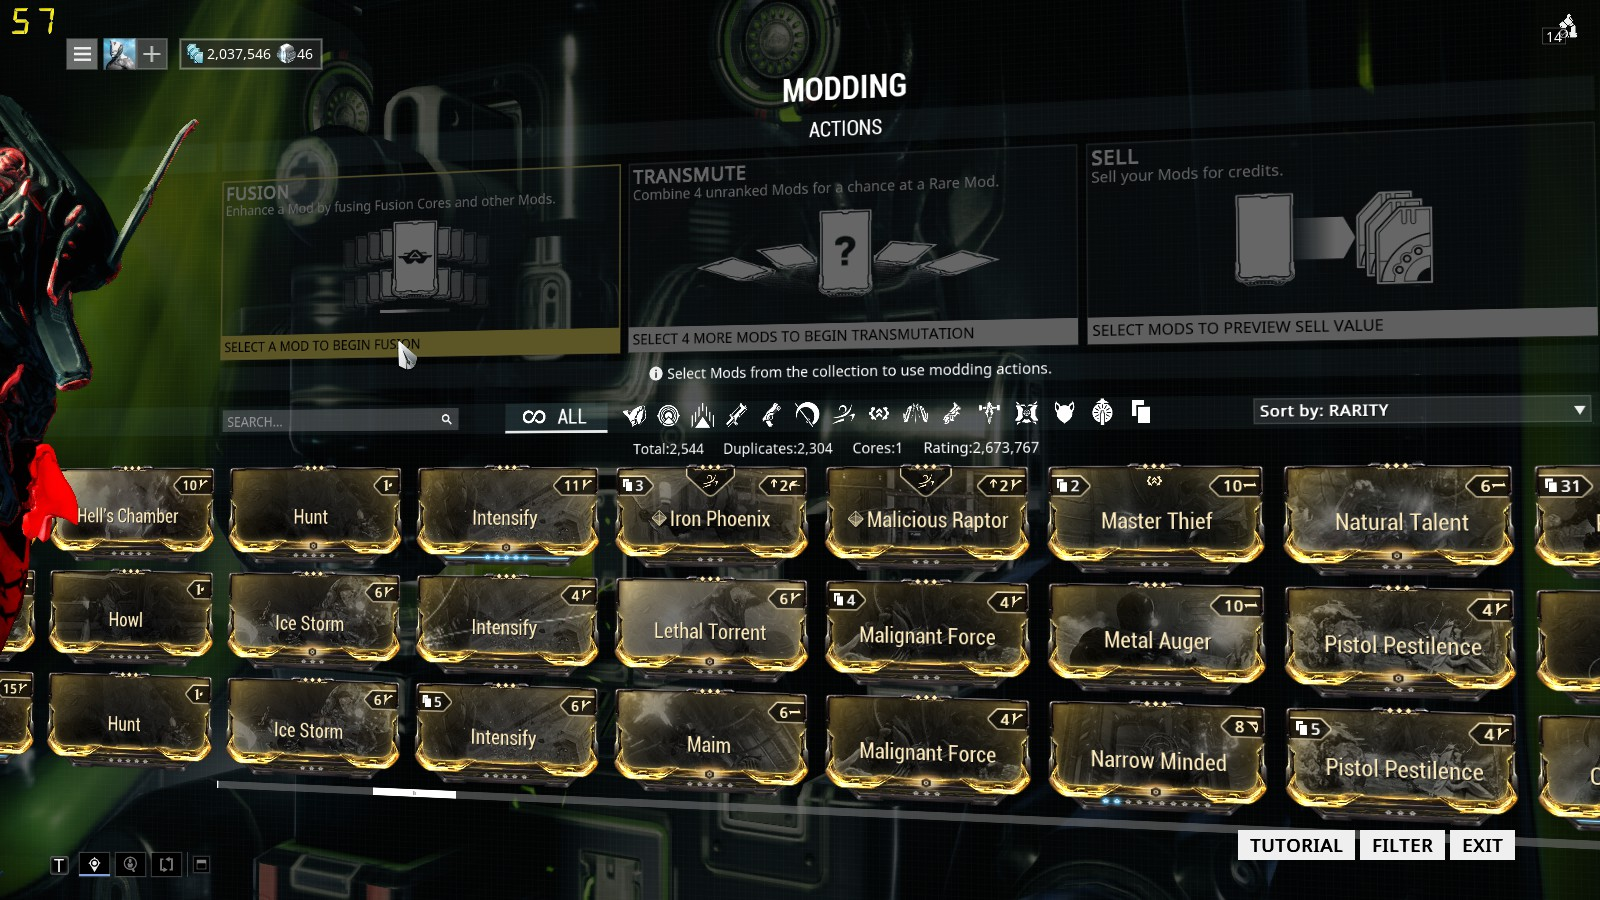 Selling] Selling MR 11 warframe account for cs go skins